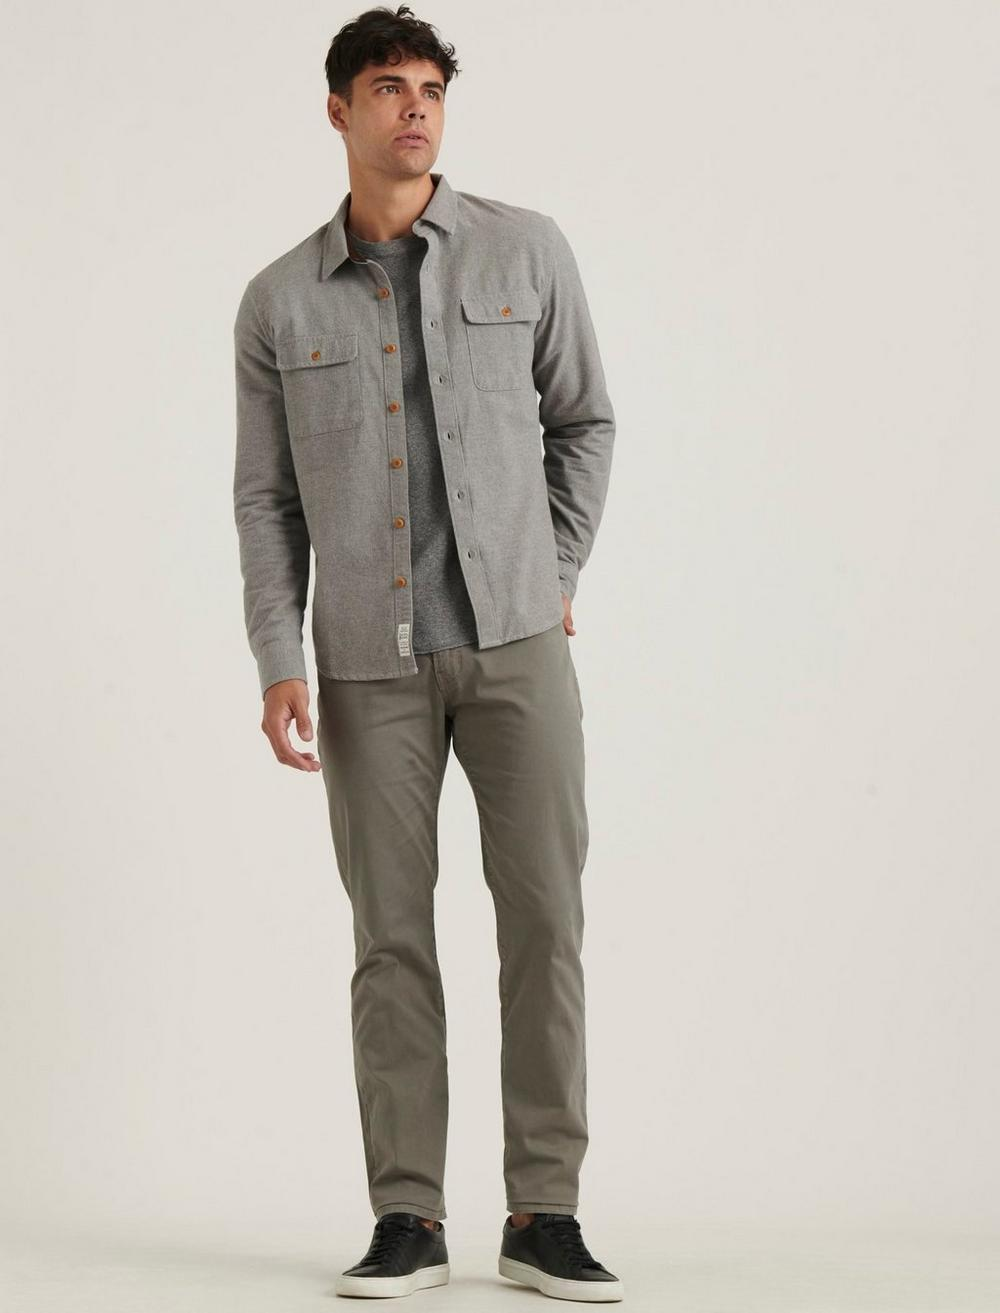 223 STRAIGHT SATEEN STRETCH JEAN, image 1